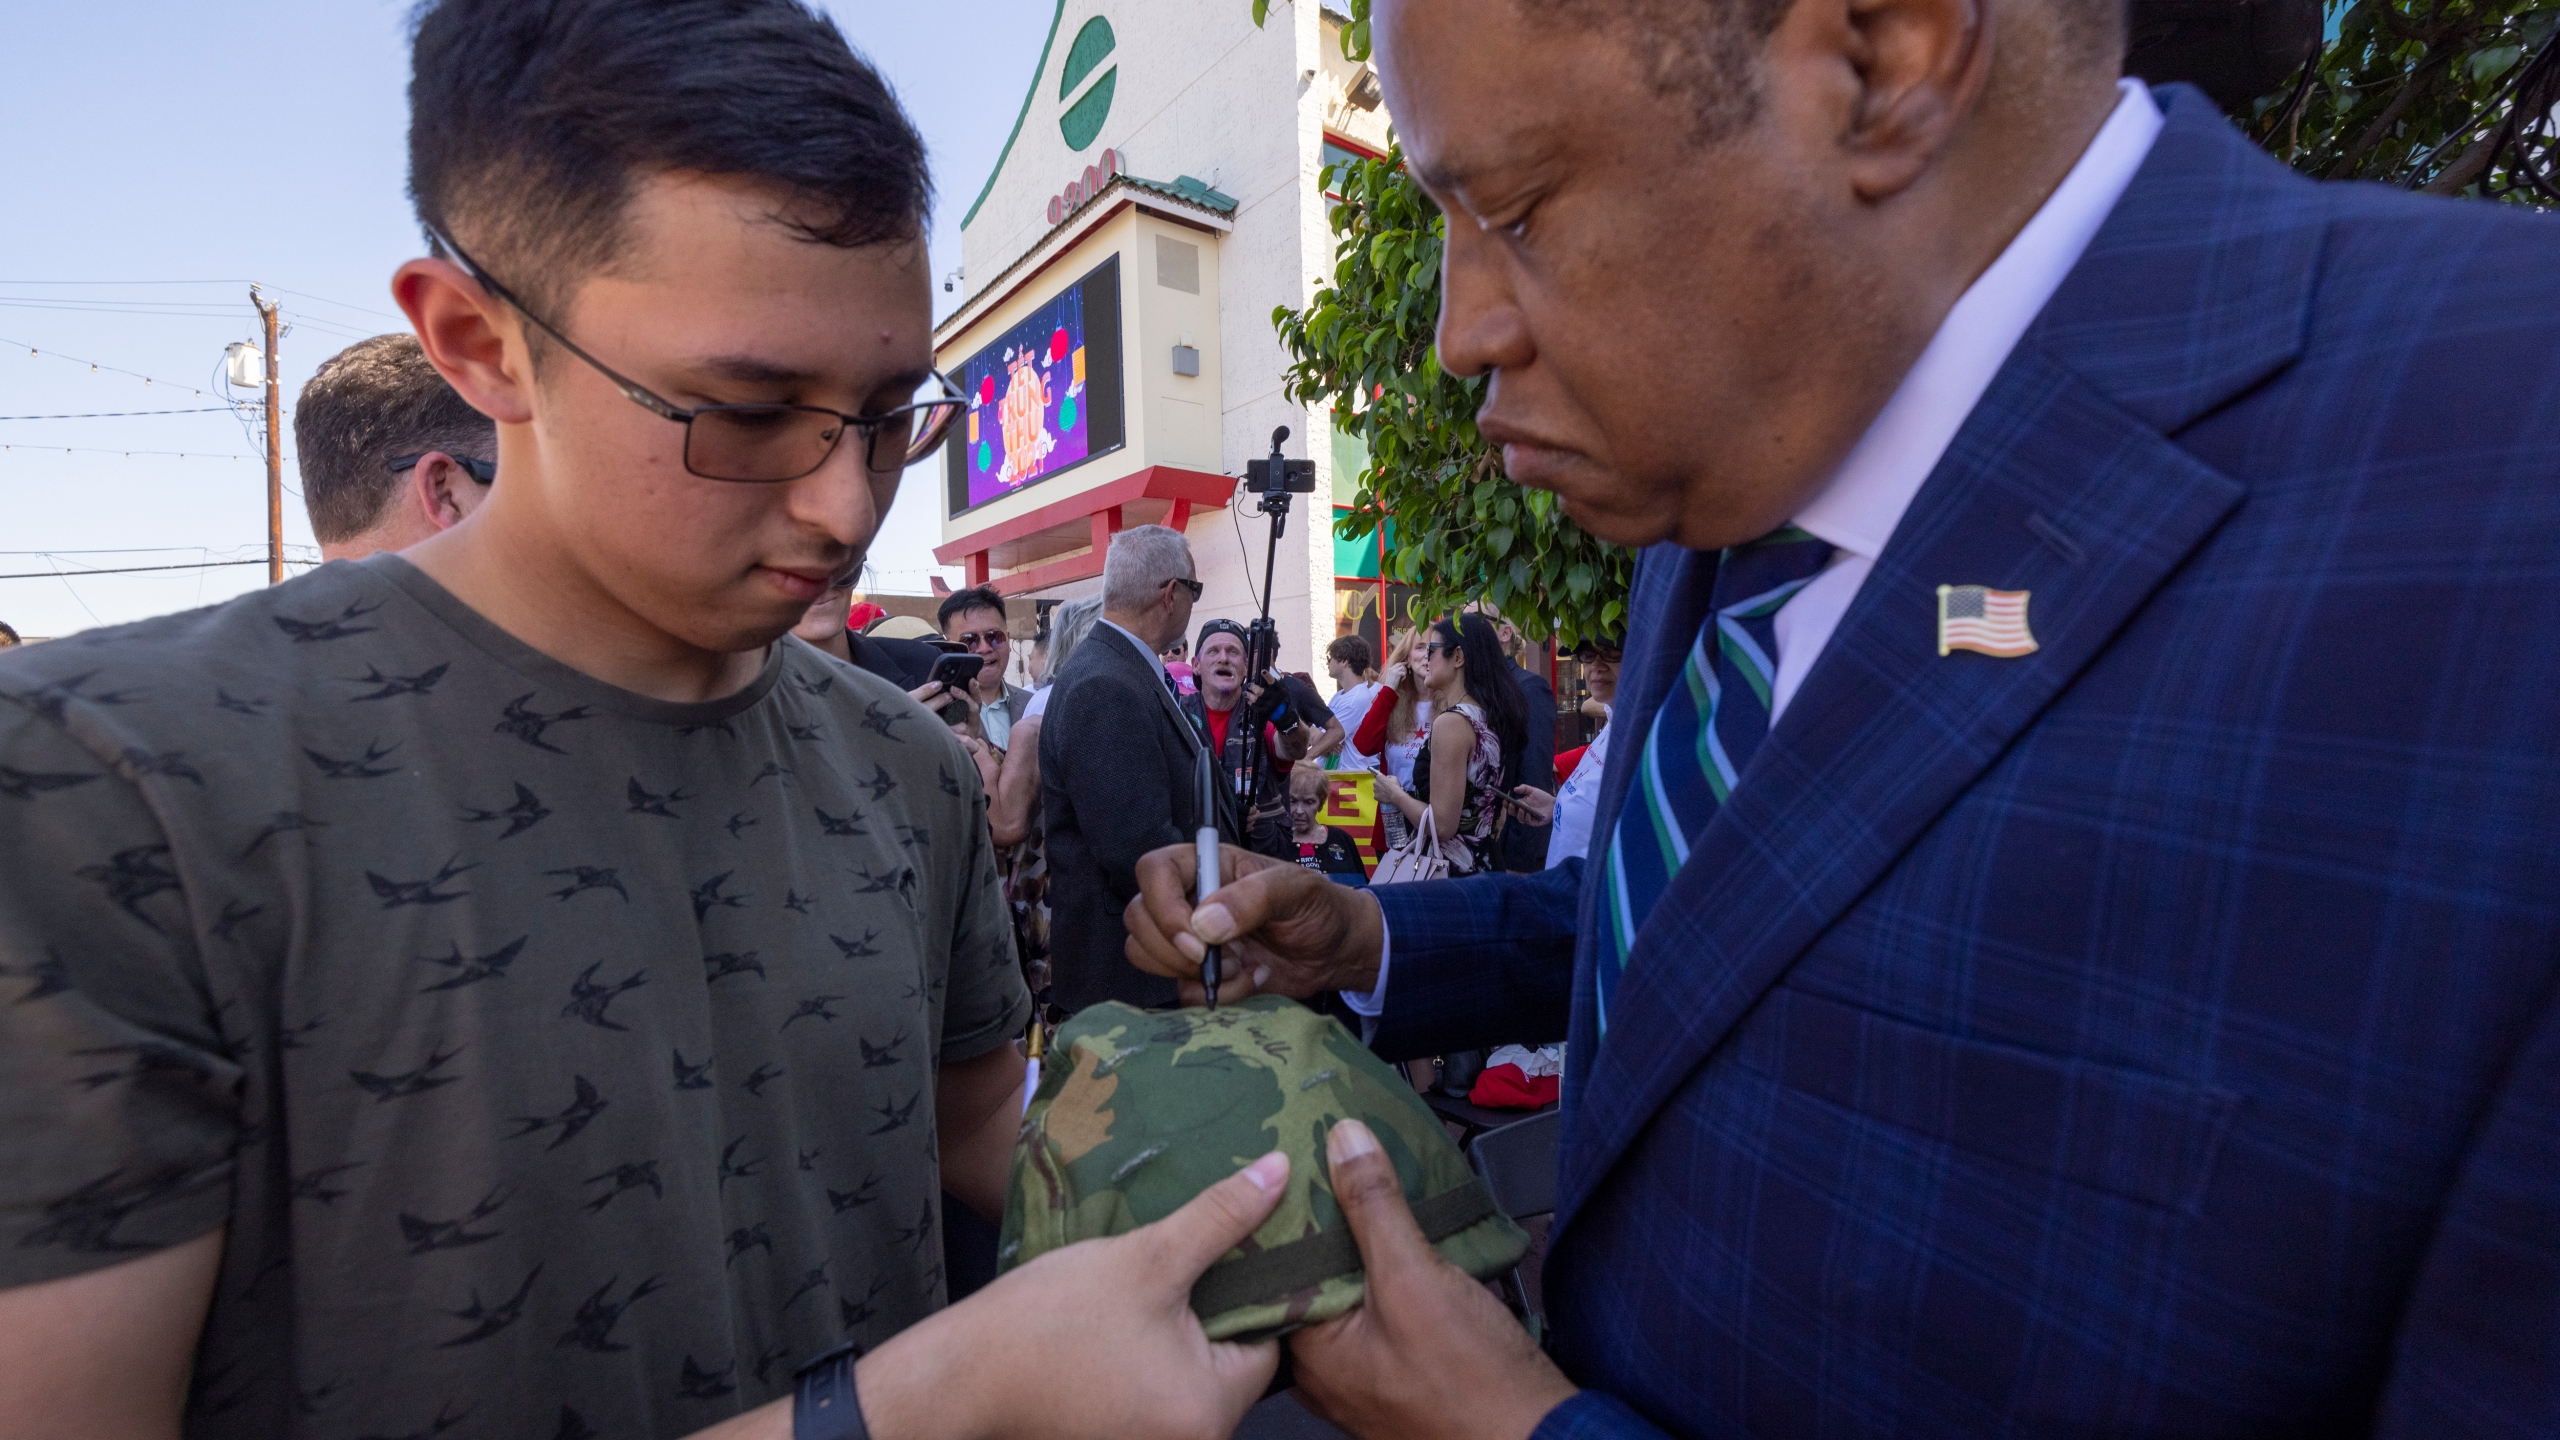 """Republican recall candidate Larry Elder signs the helmet of U.S. Navy ETSN Daniel Luiz at the """"Asian Rally for Yes on Recall"""" at the Asian Garden Mall on Sept. 4, 2021, in Westminster. (David McNew/Getty Images)"""